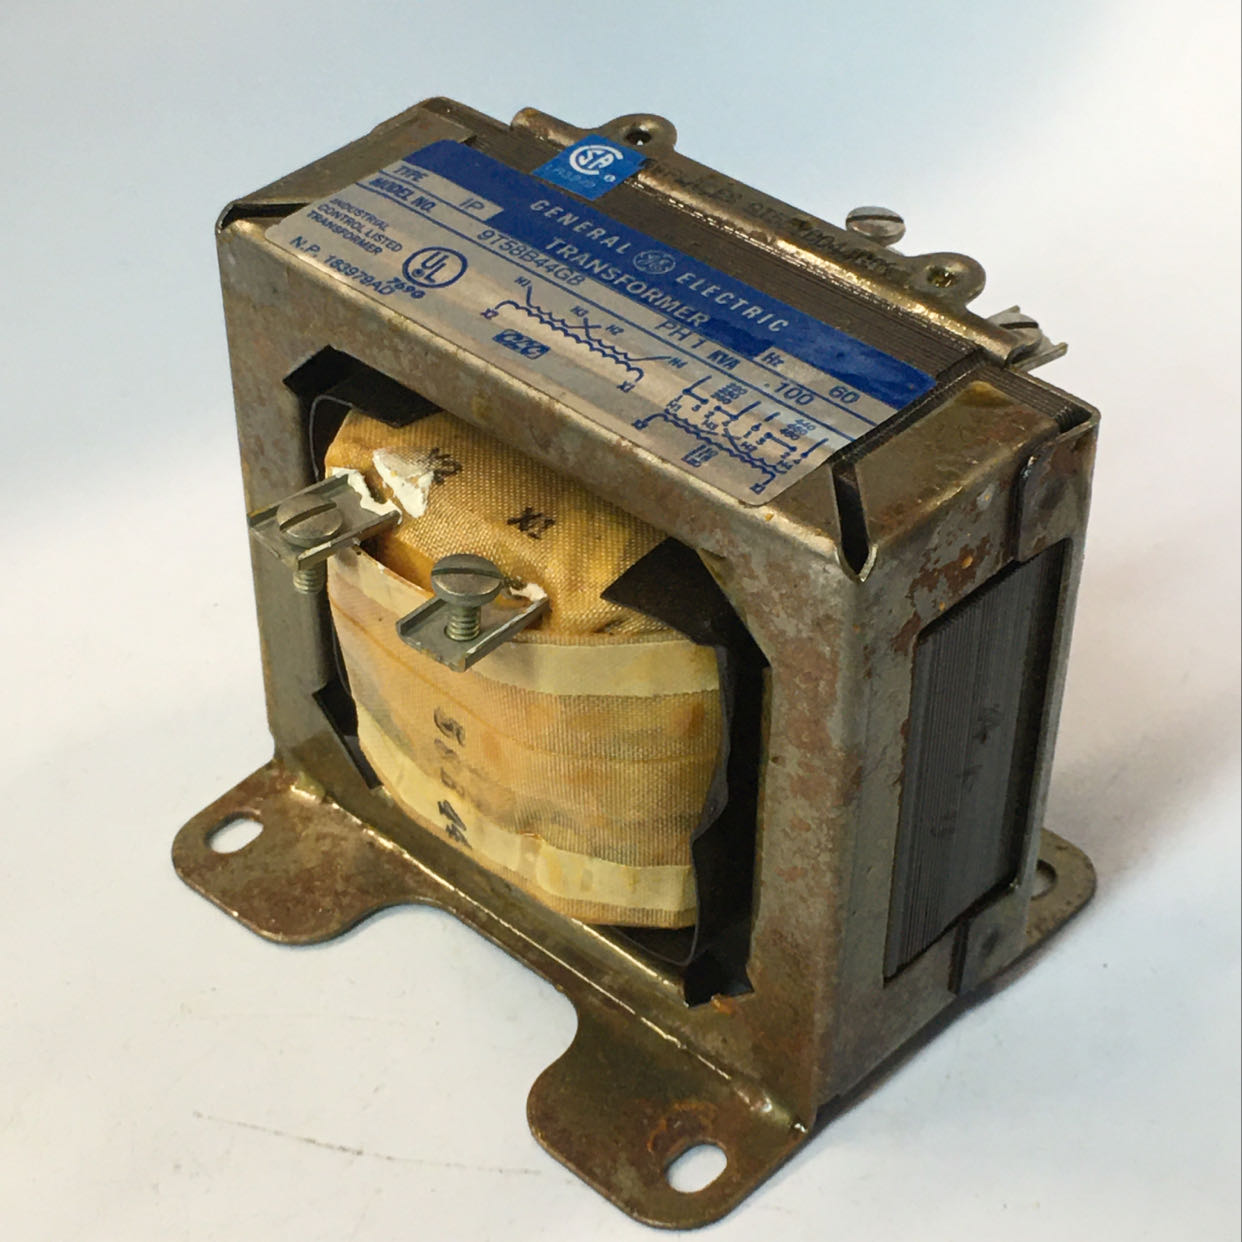 General Electric Dry Type Industrial Control Transformer 9T58B44G8 60HZ